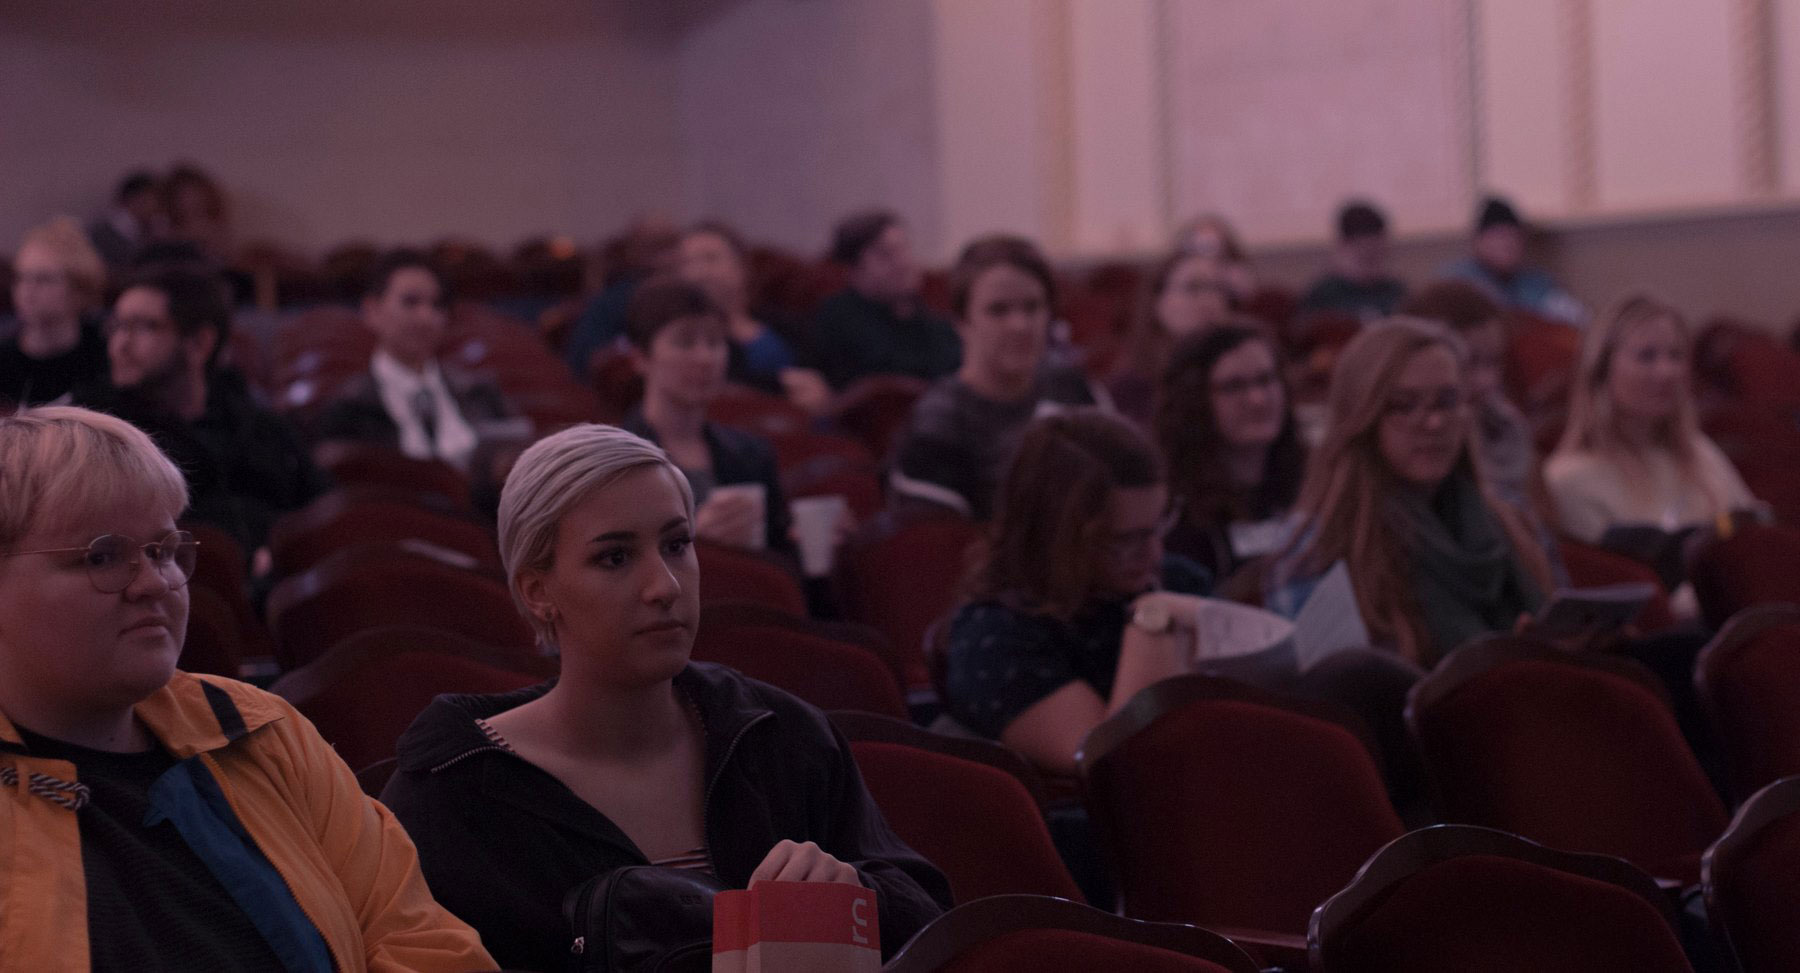 Grand Rapids Feminist Film Festival highlights marginalized voices from around the globe.